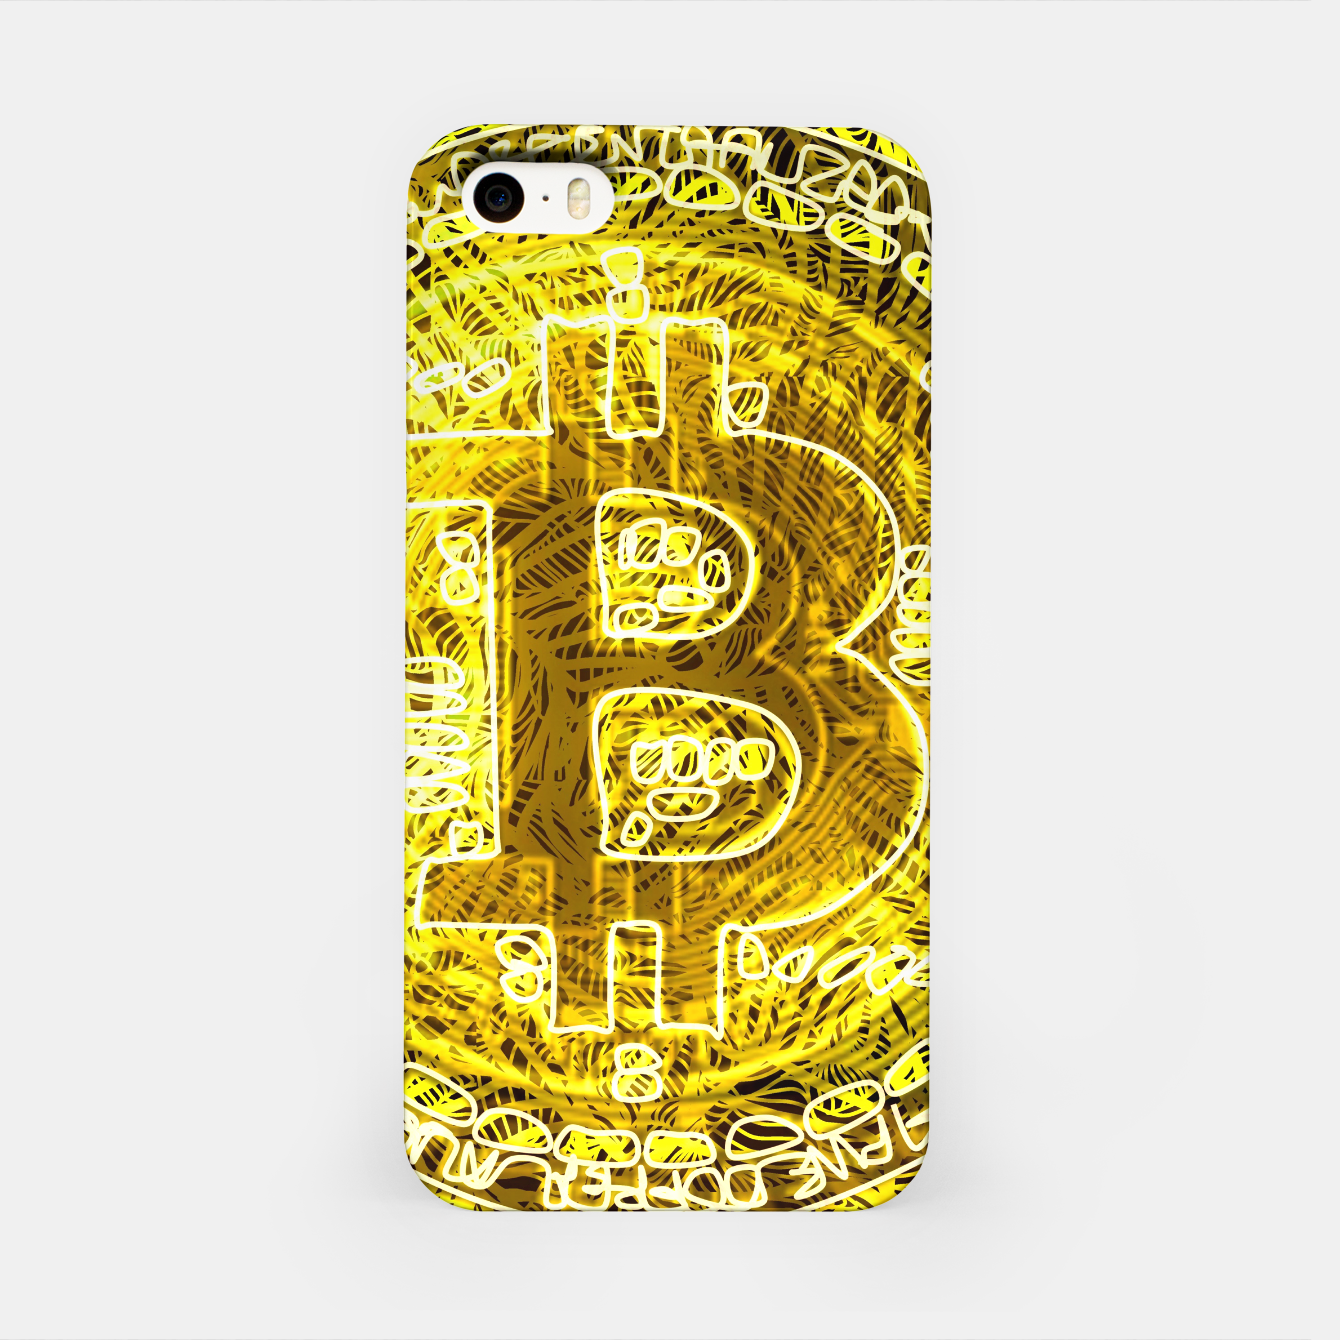 Image of bc iPhone Case - Live Heroes